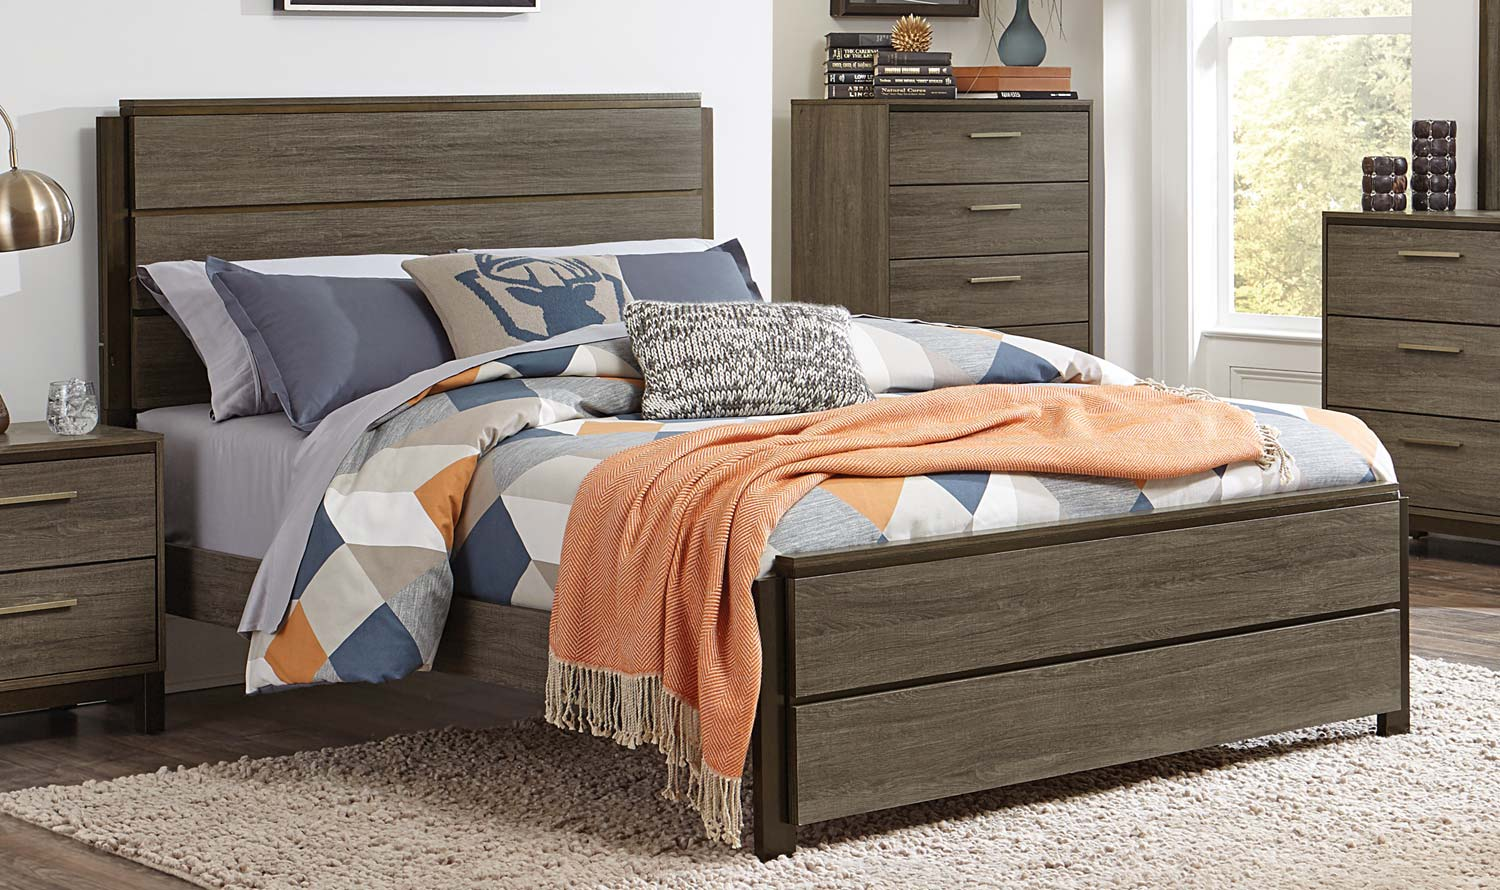 Homelegance Vestavia Panel Bed - Grey/Dark Brown